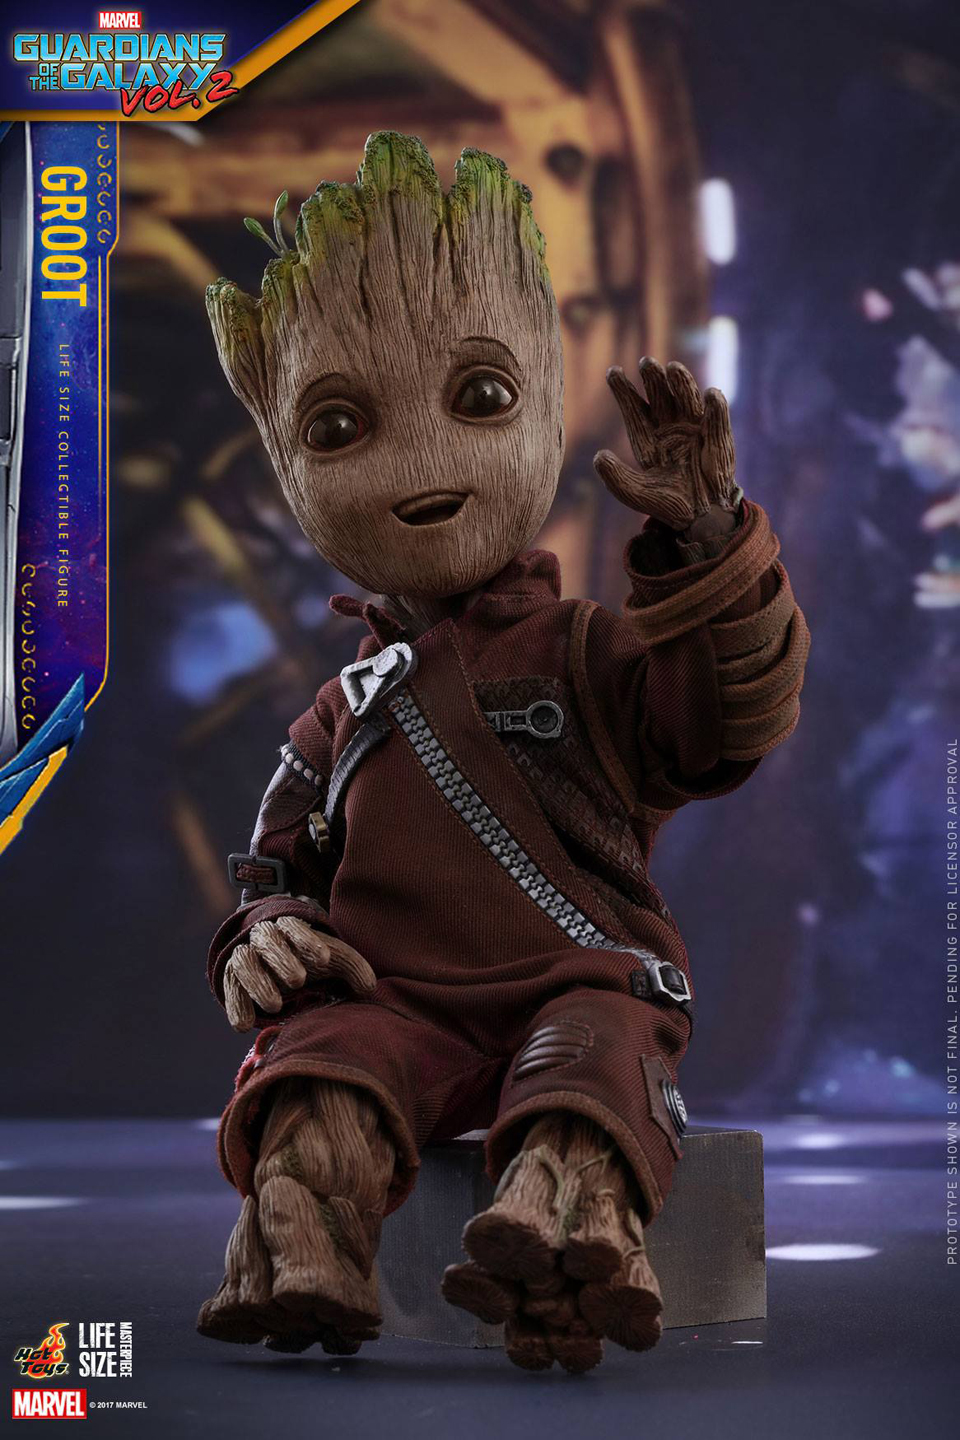 Hot Toys GotG Vol. 2 Groot Life-size Action Figure